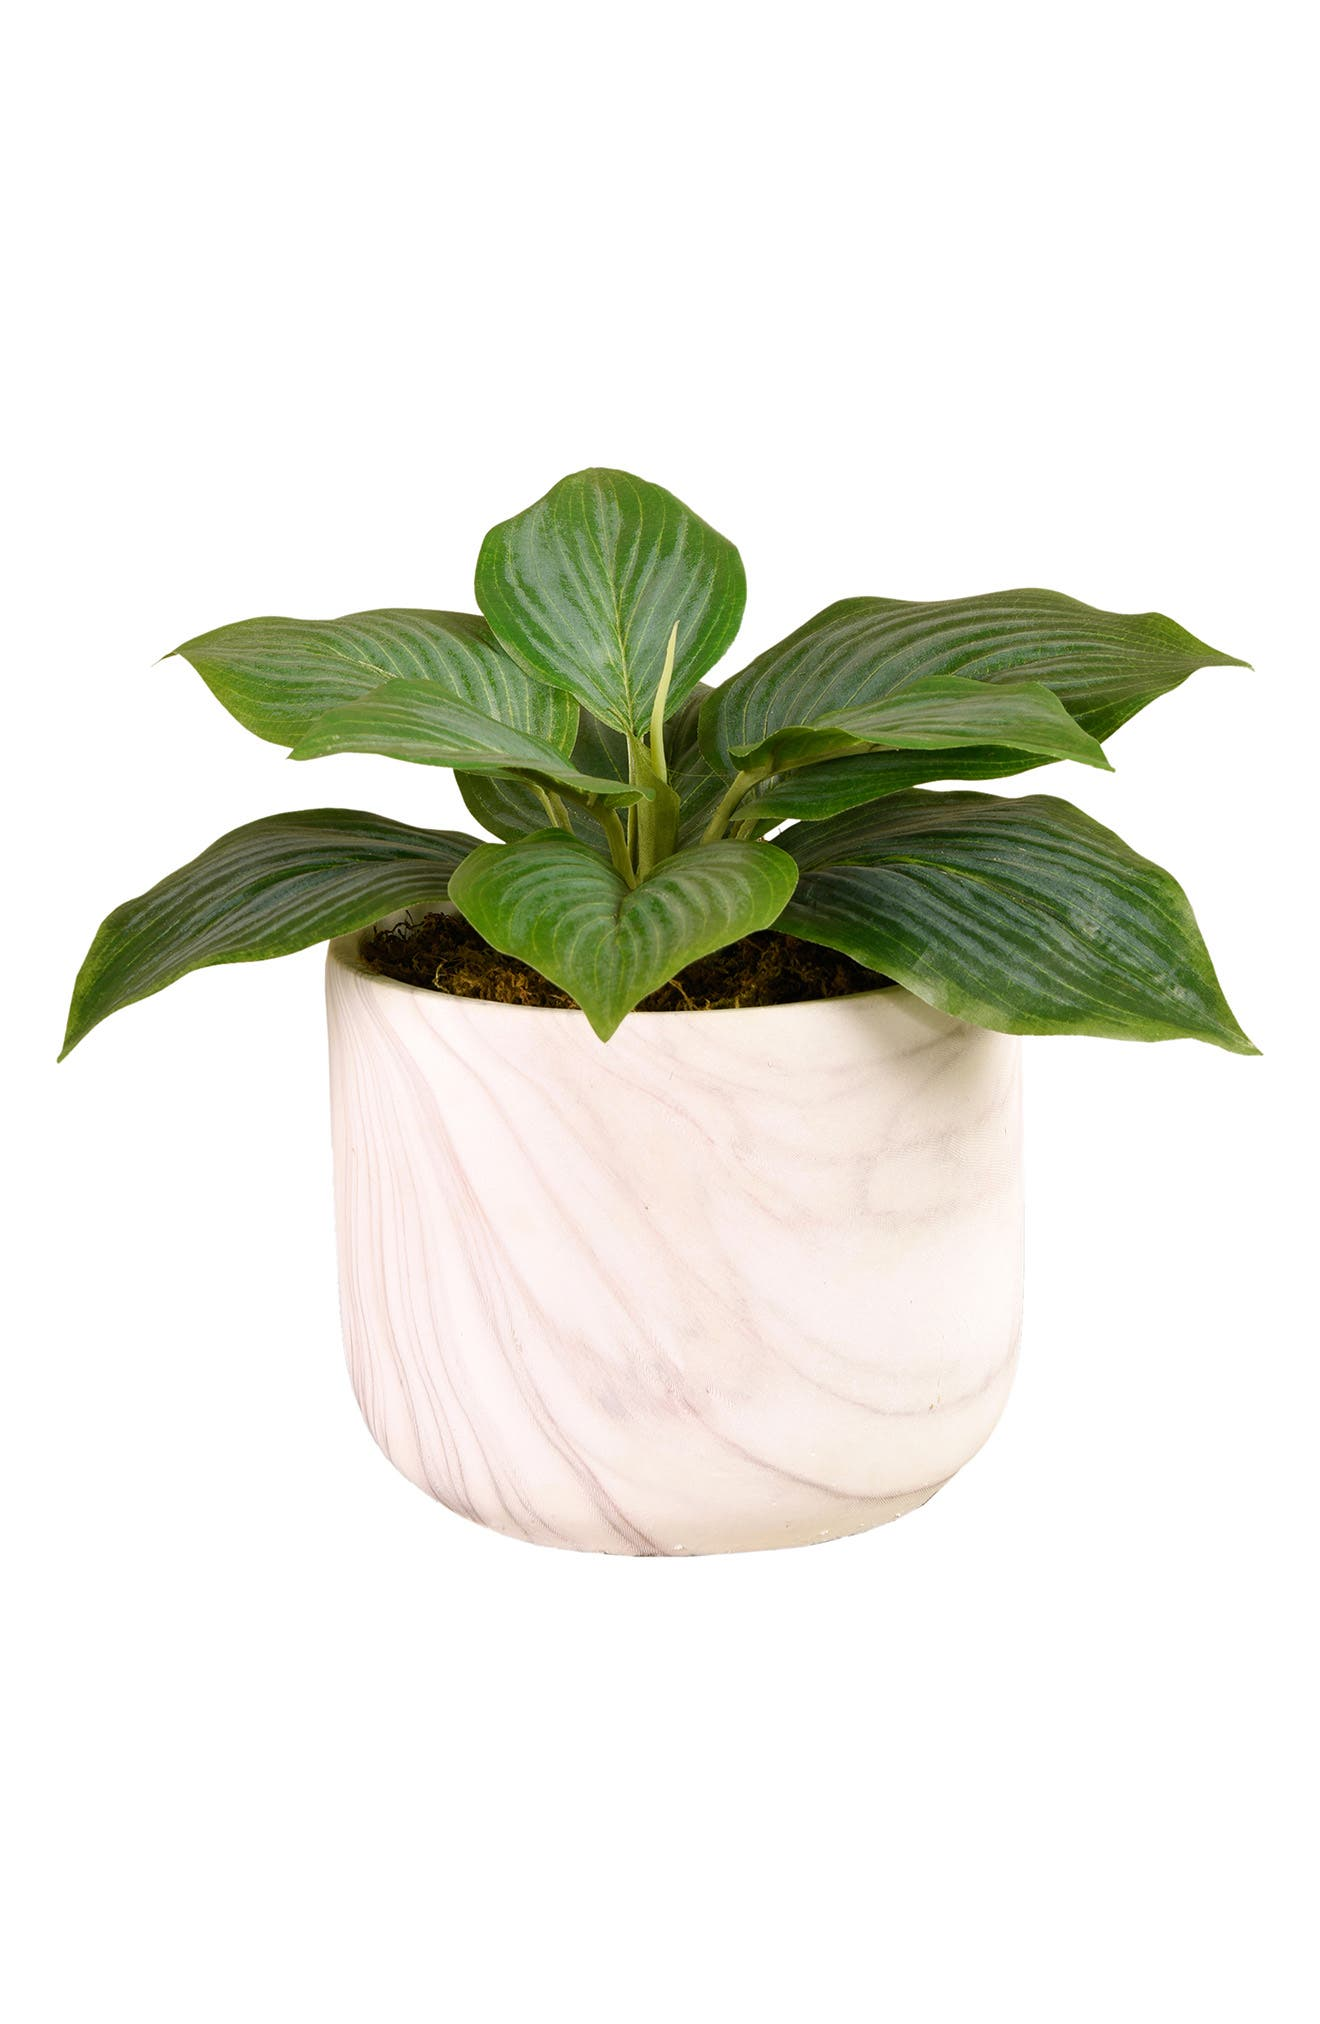 There\\\'s no need for a green thumb when you\\\'ve got this charming florist-designed faux hosta fanned out in a marbled concrete pot. The design serves as a perfect complement to any modern or classical decor. Style Name: Bloomr Potted Hosta Planter Decoration. Style Number: 6090733. Available in stores.